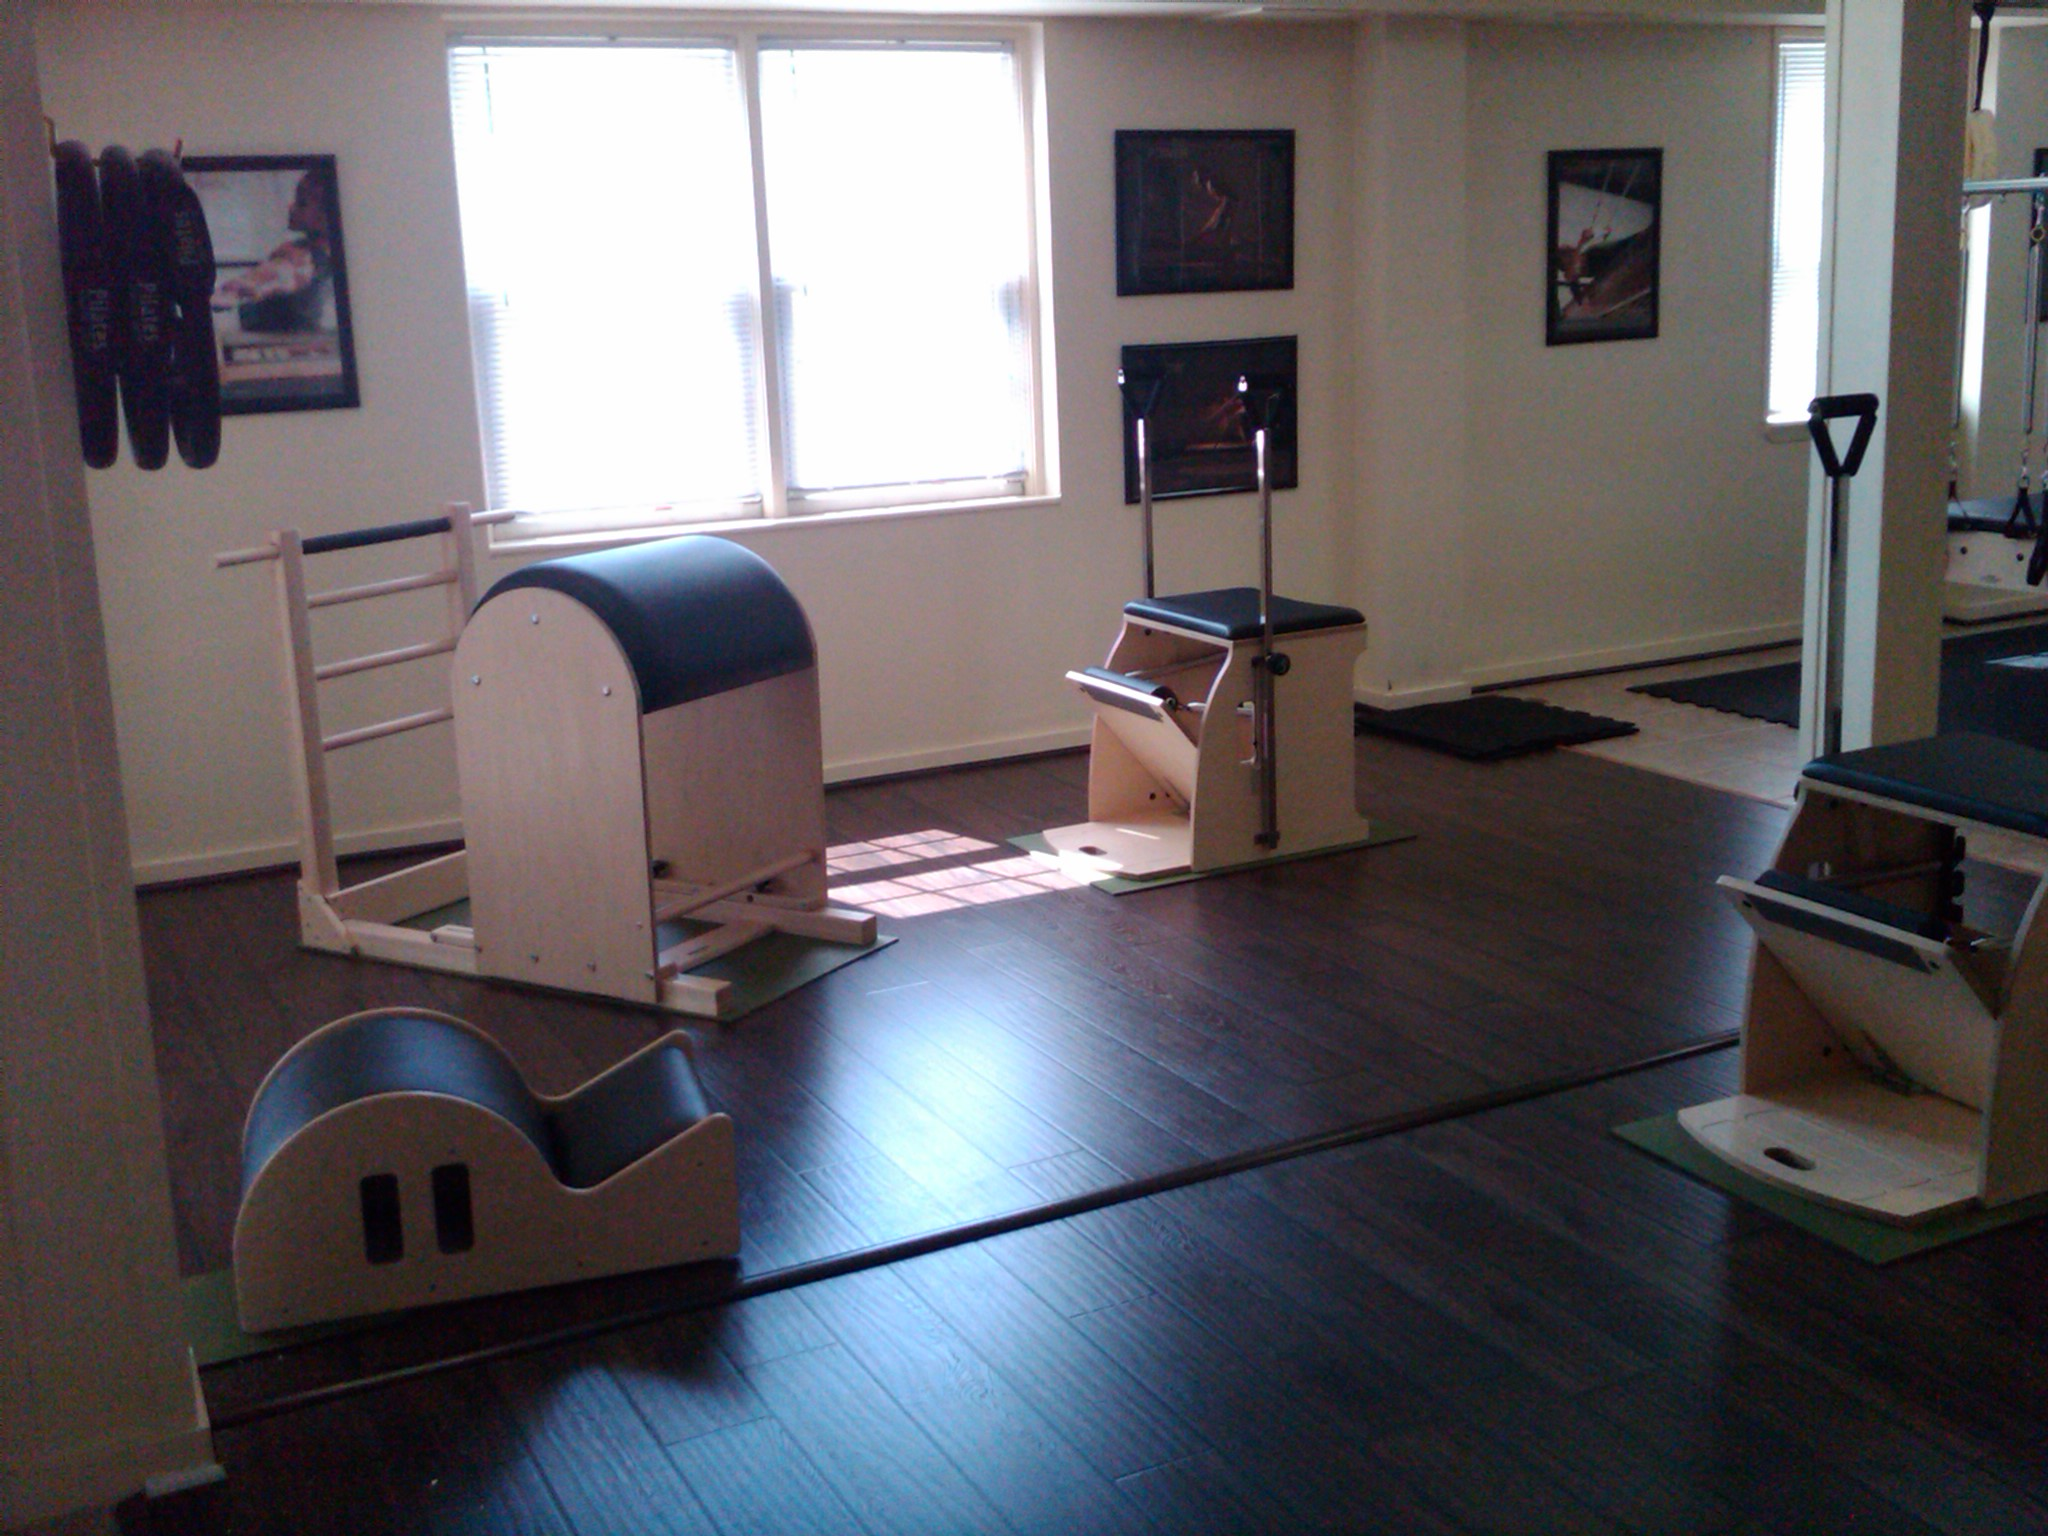 Greensboro Pilates Studio